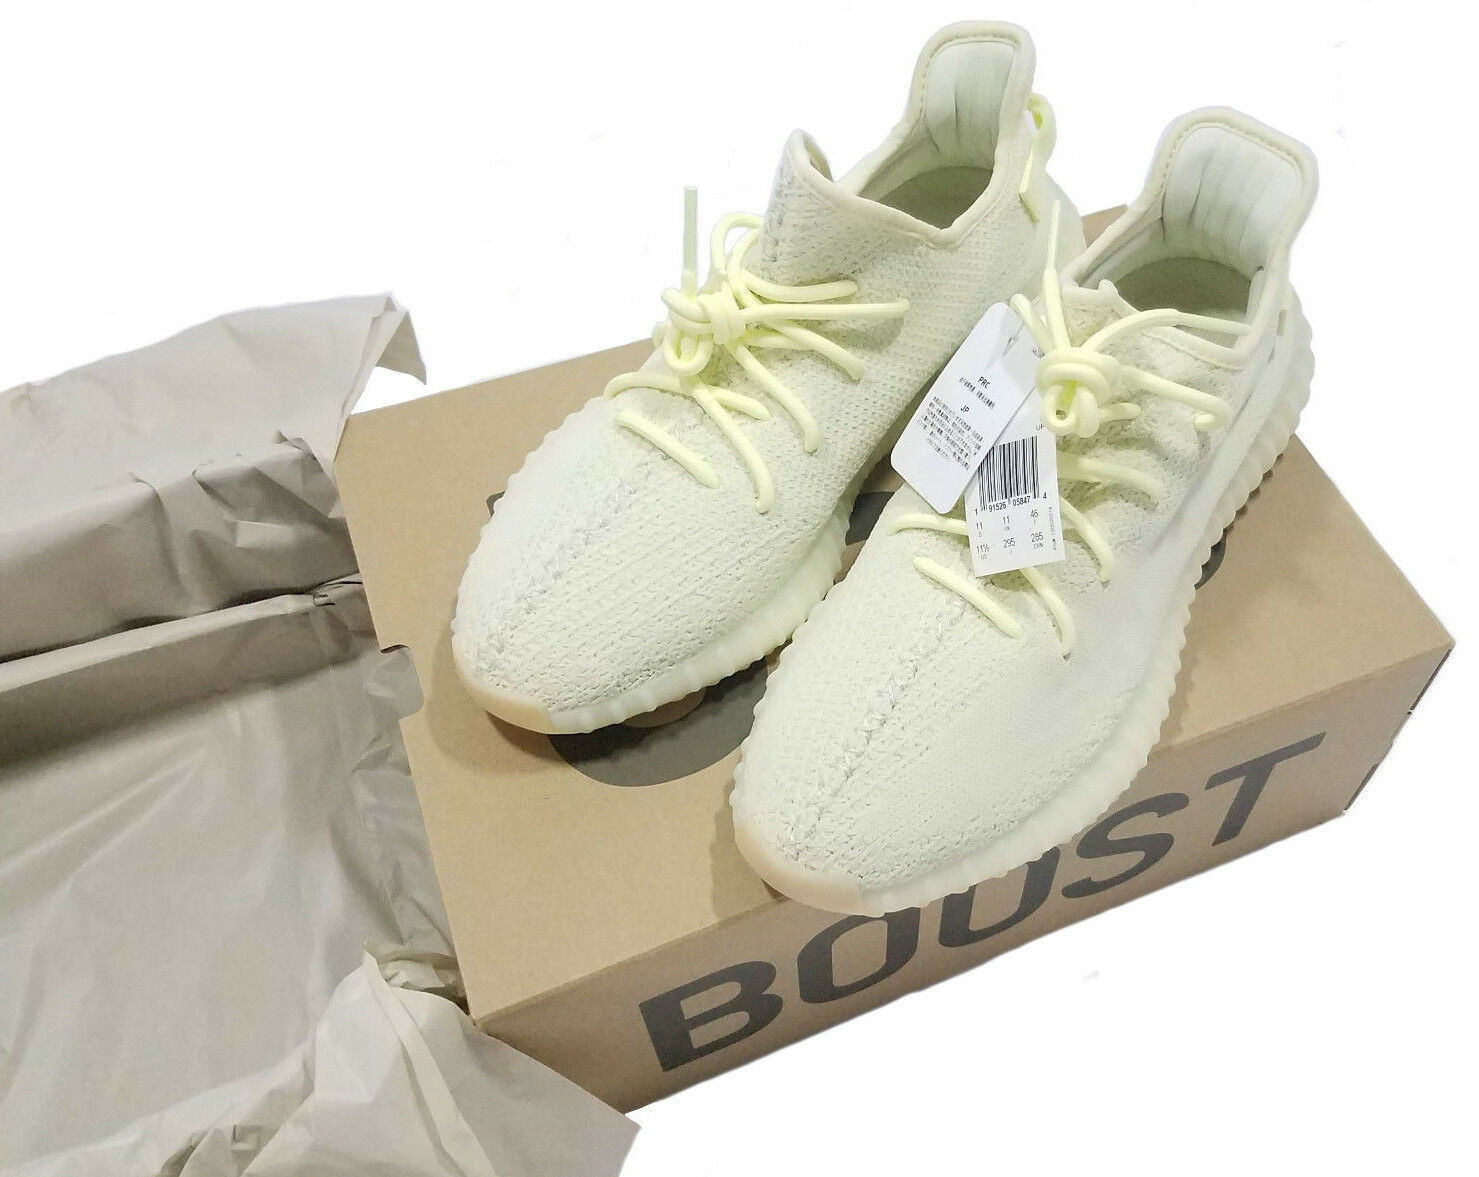 Adidas Yeezy Boost 350 V2 Butter Mens Size 10.5-11